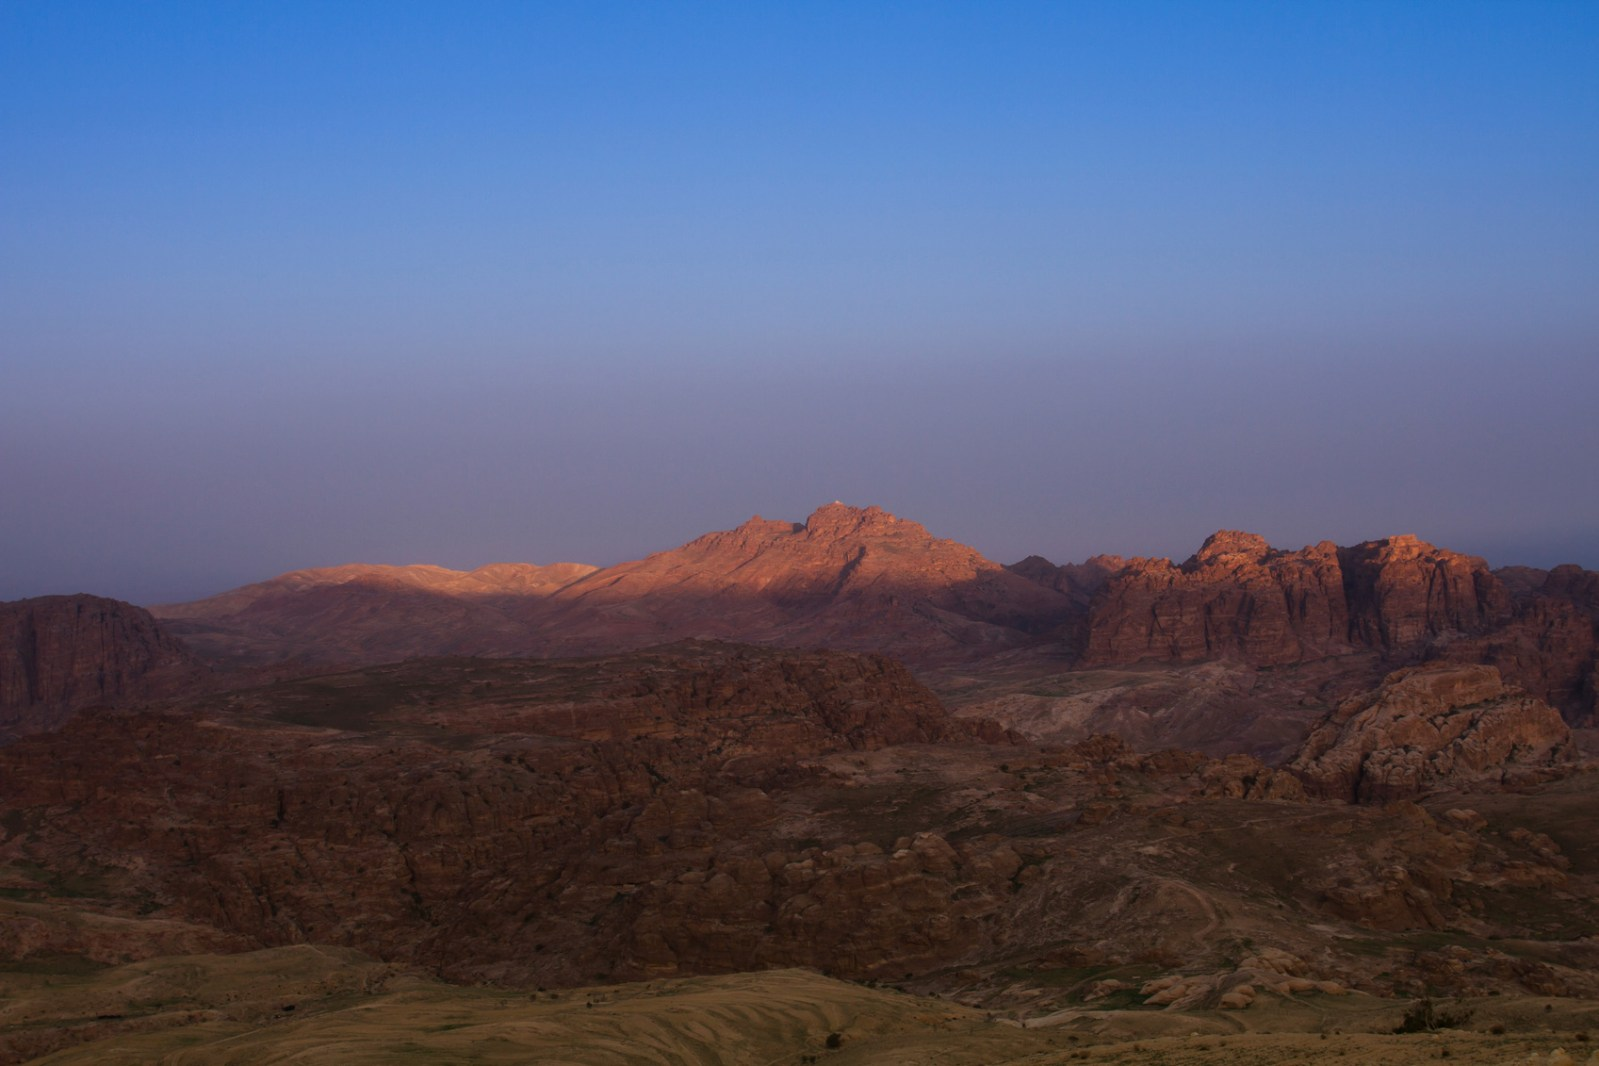 Sunrise over the Wadi Musa Mountains